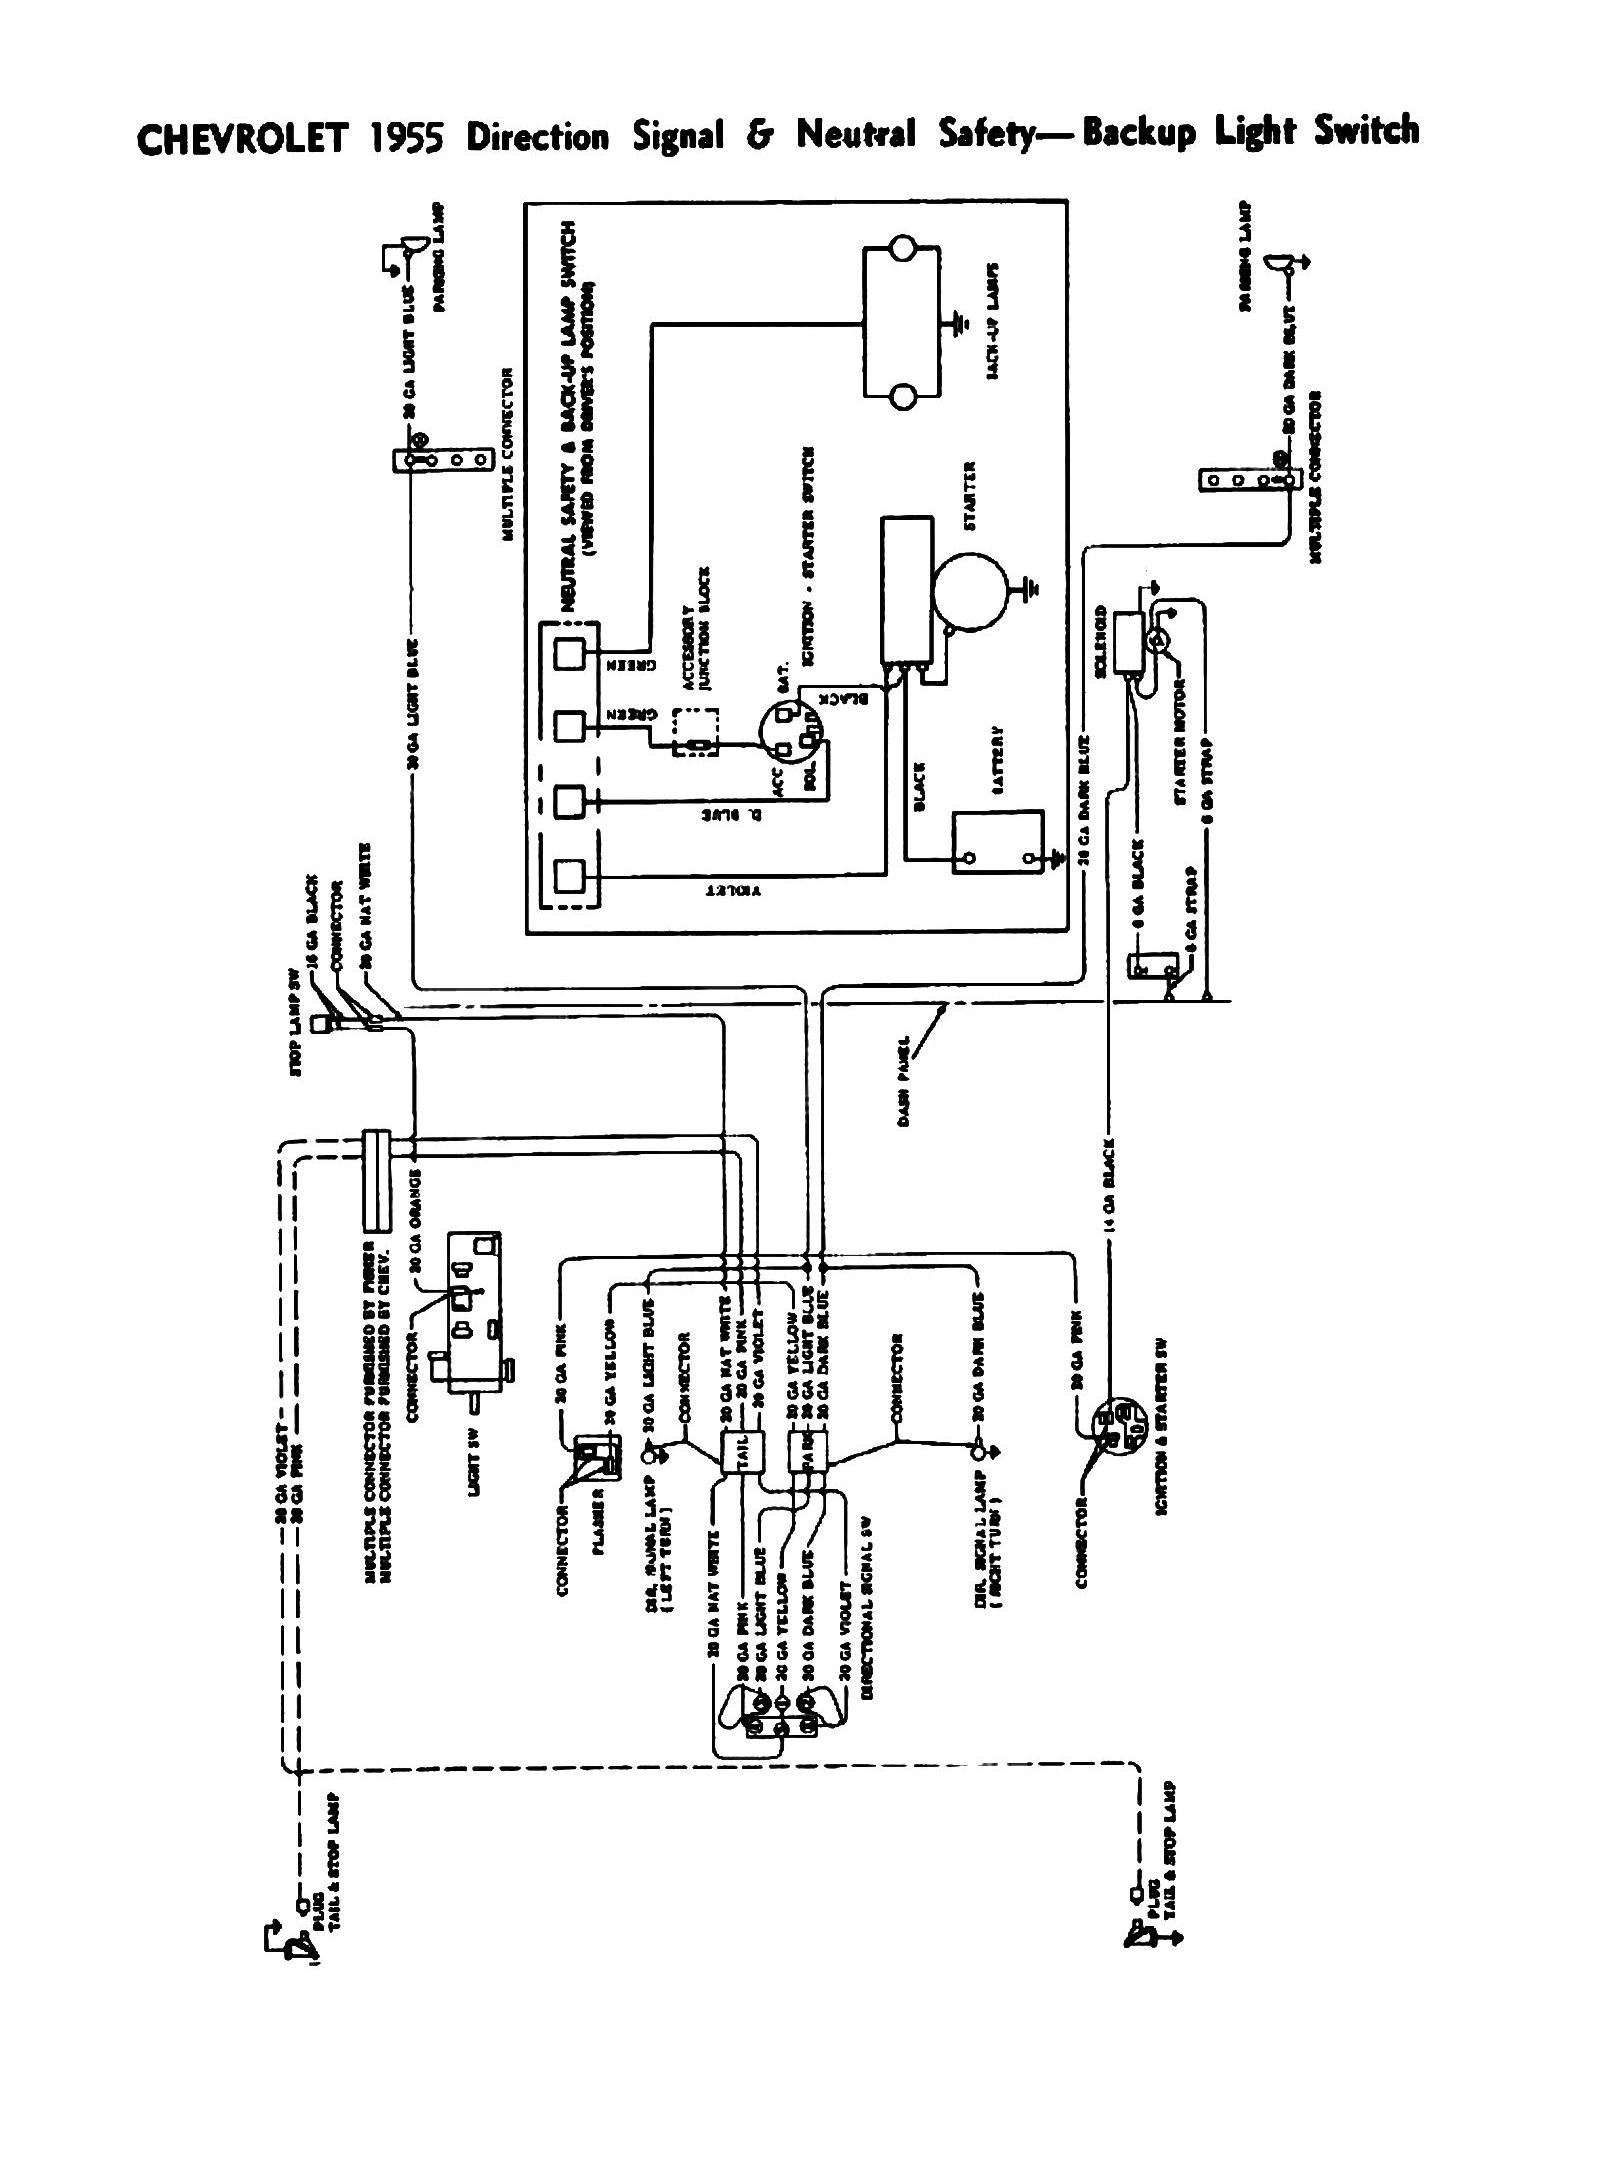 Wiring Diagrams For Chevy C4500 Trucks